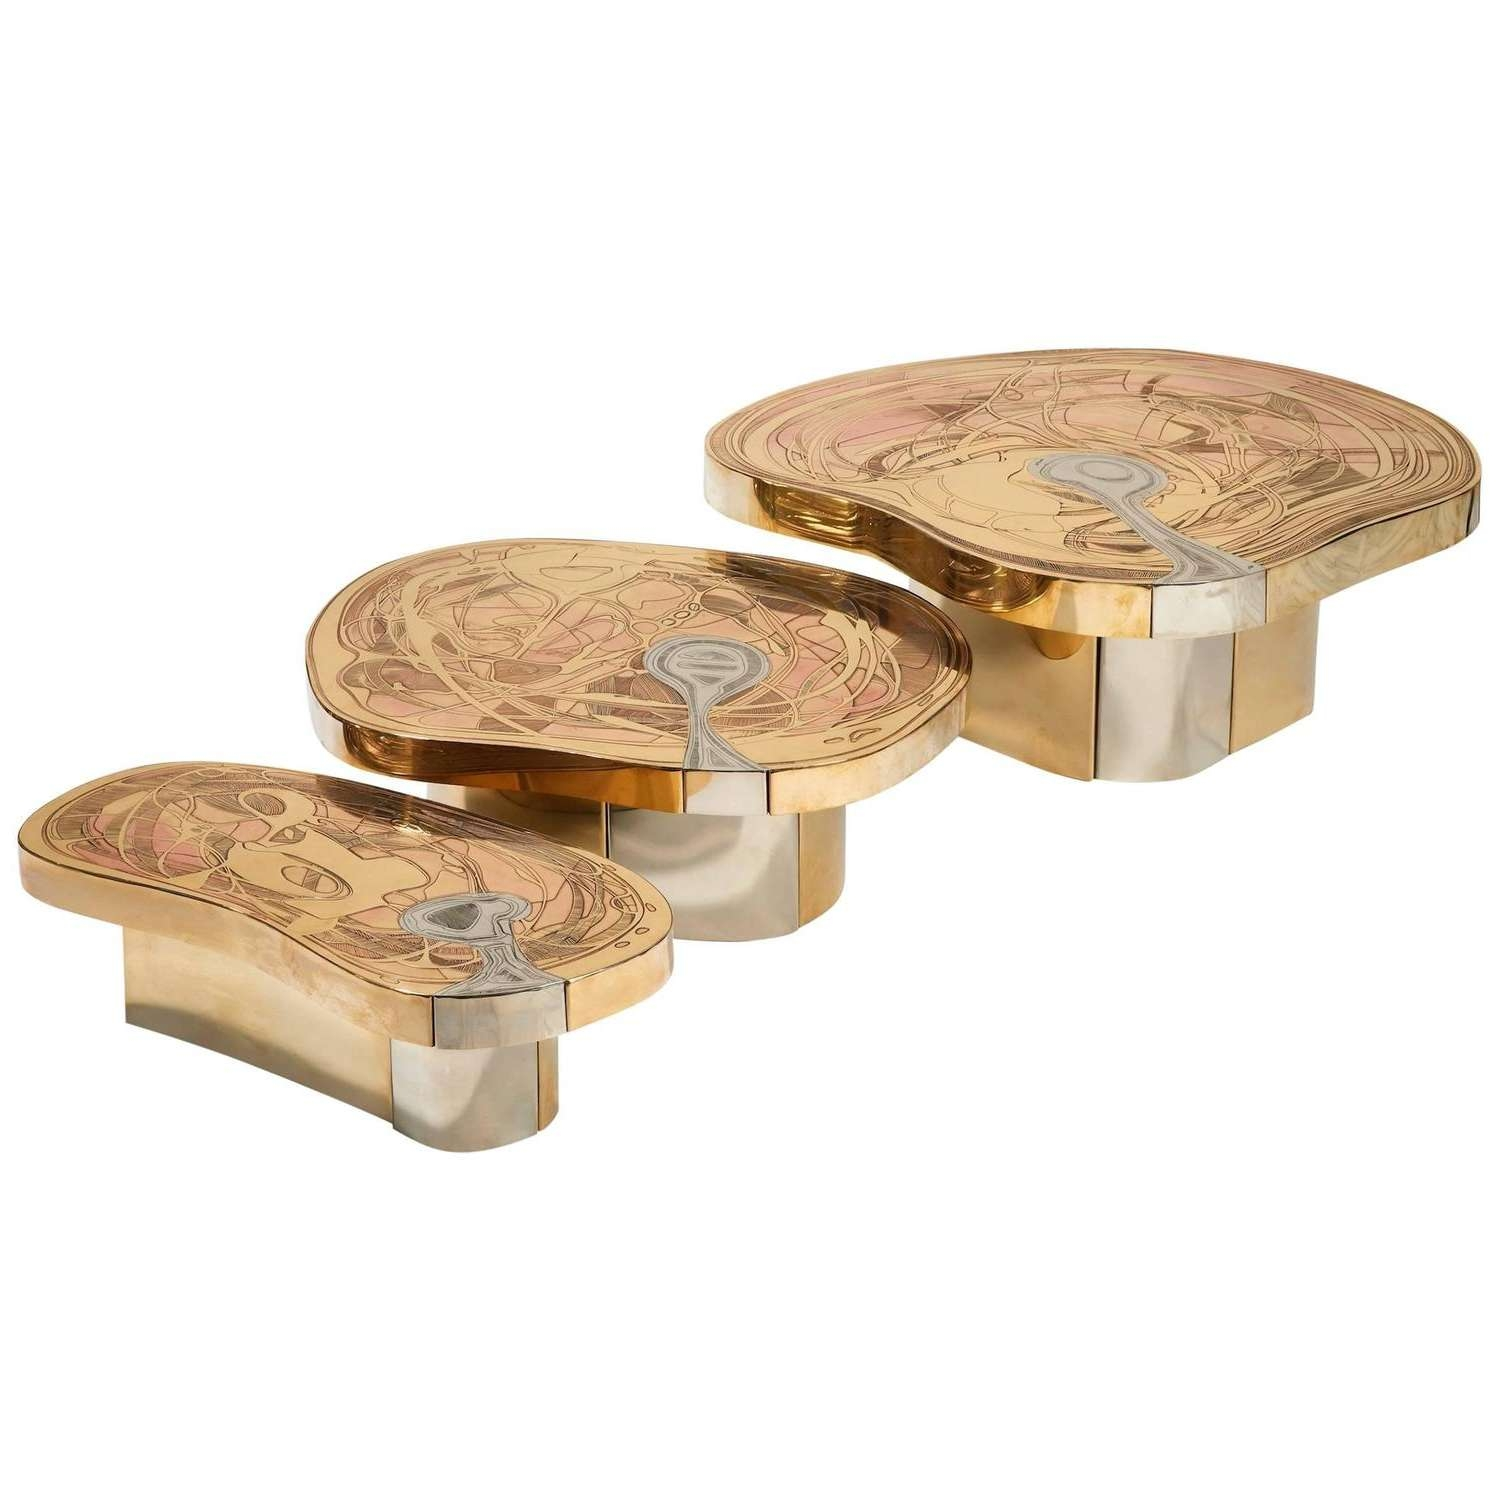 Most Up To Date Puzzle Coffee Tables Intended For Contemporary Puzzle Coffee Tablegulla Johnsdottir For Sale At (View 20 of 20)